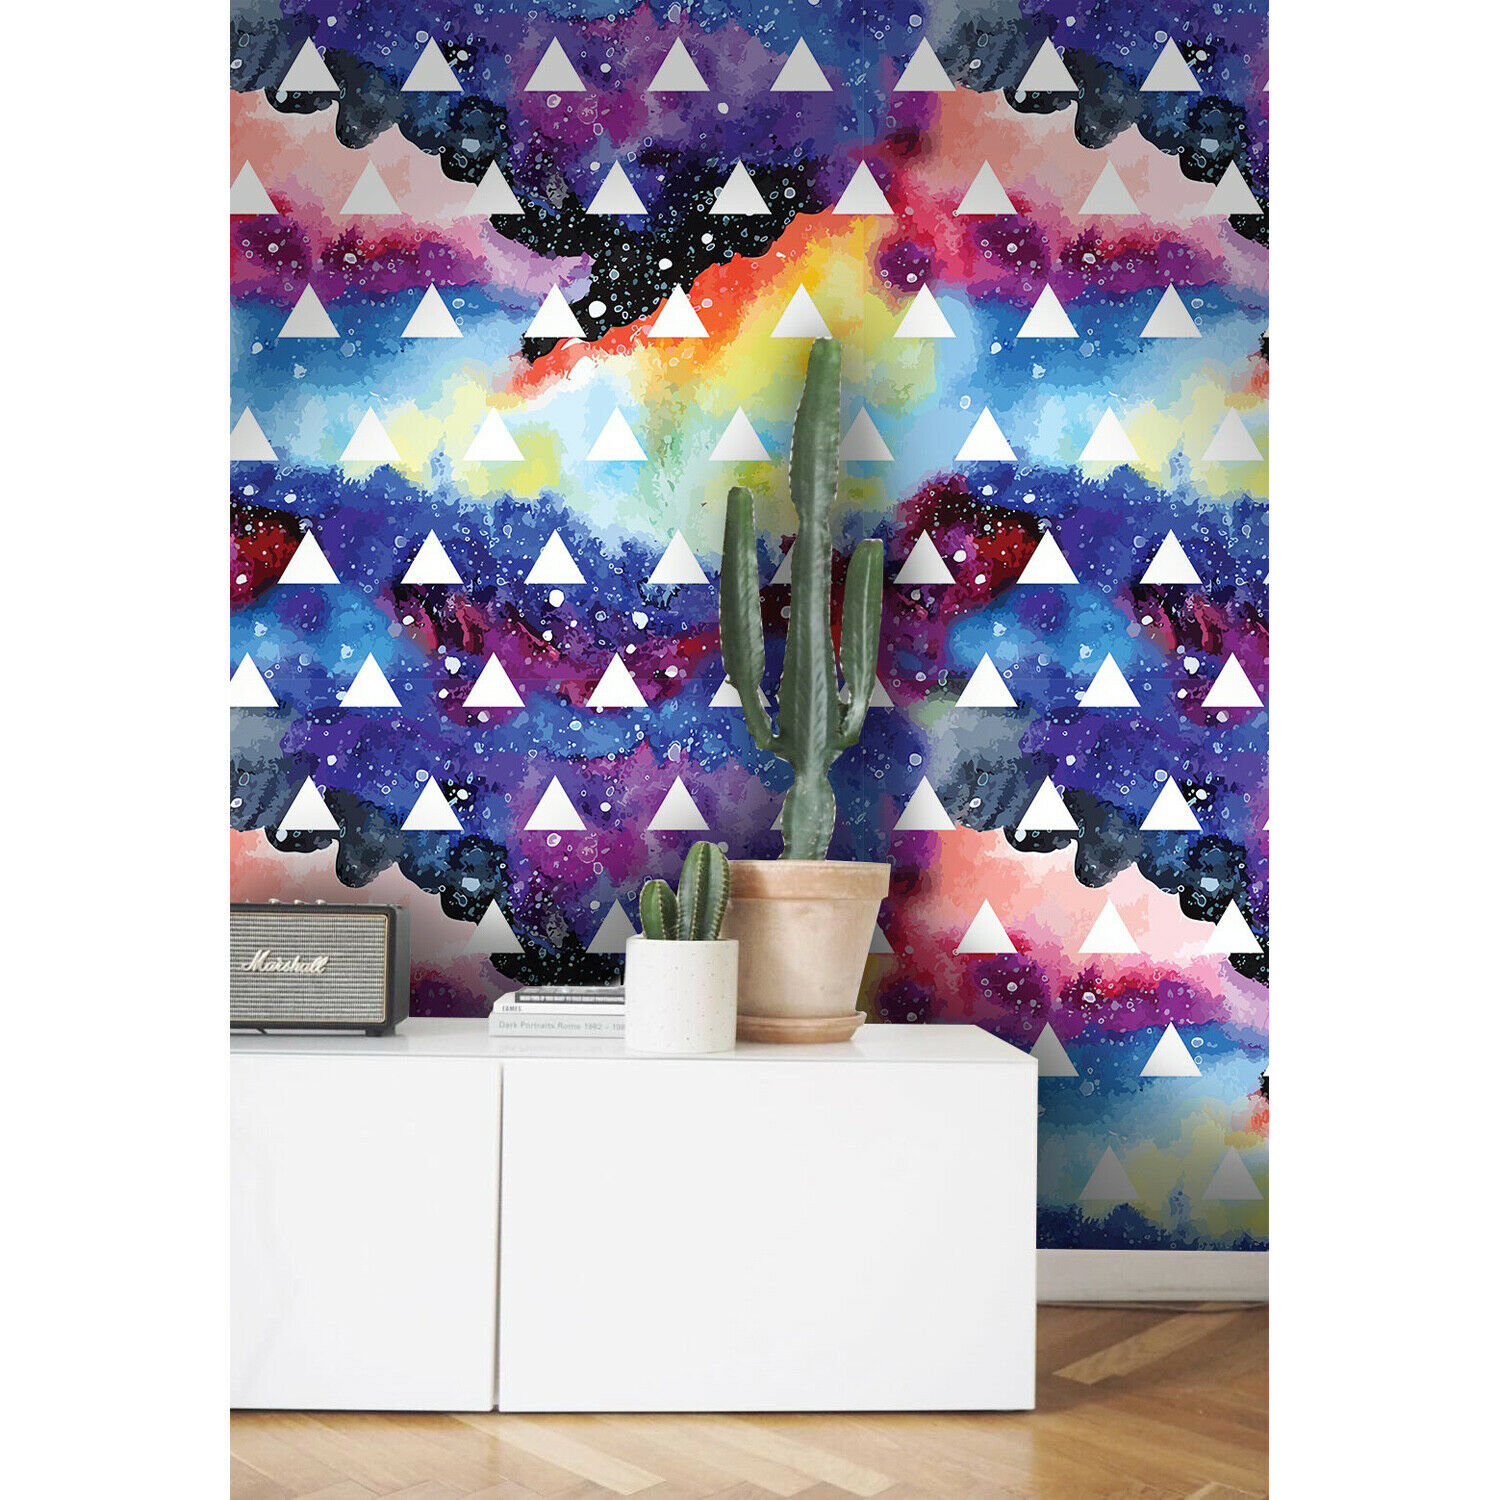 Galaxy Removable wallpaper Farbeful Blau and Gelb wall mural vlies